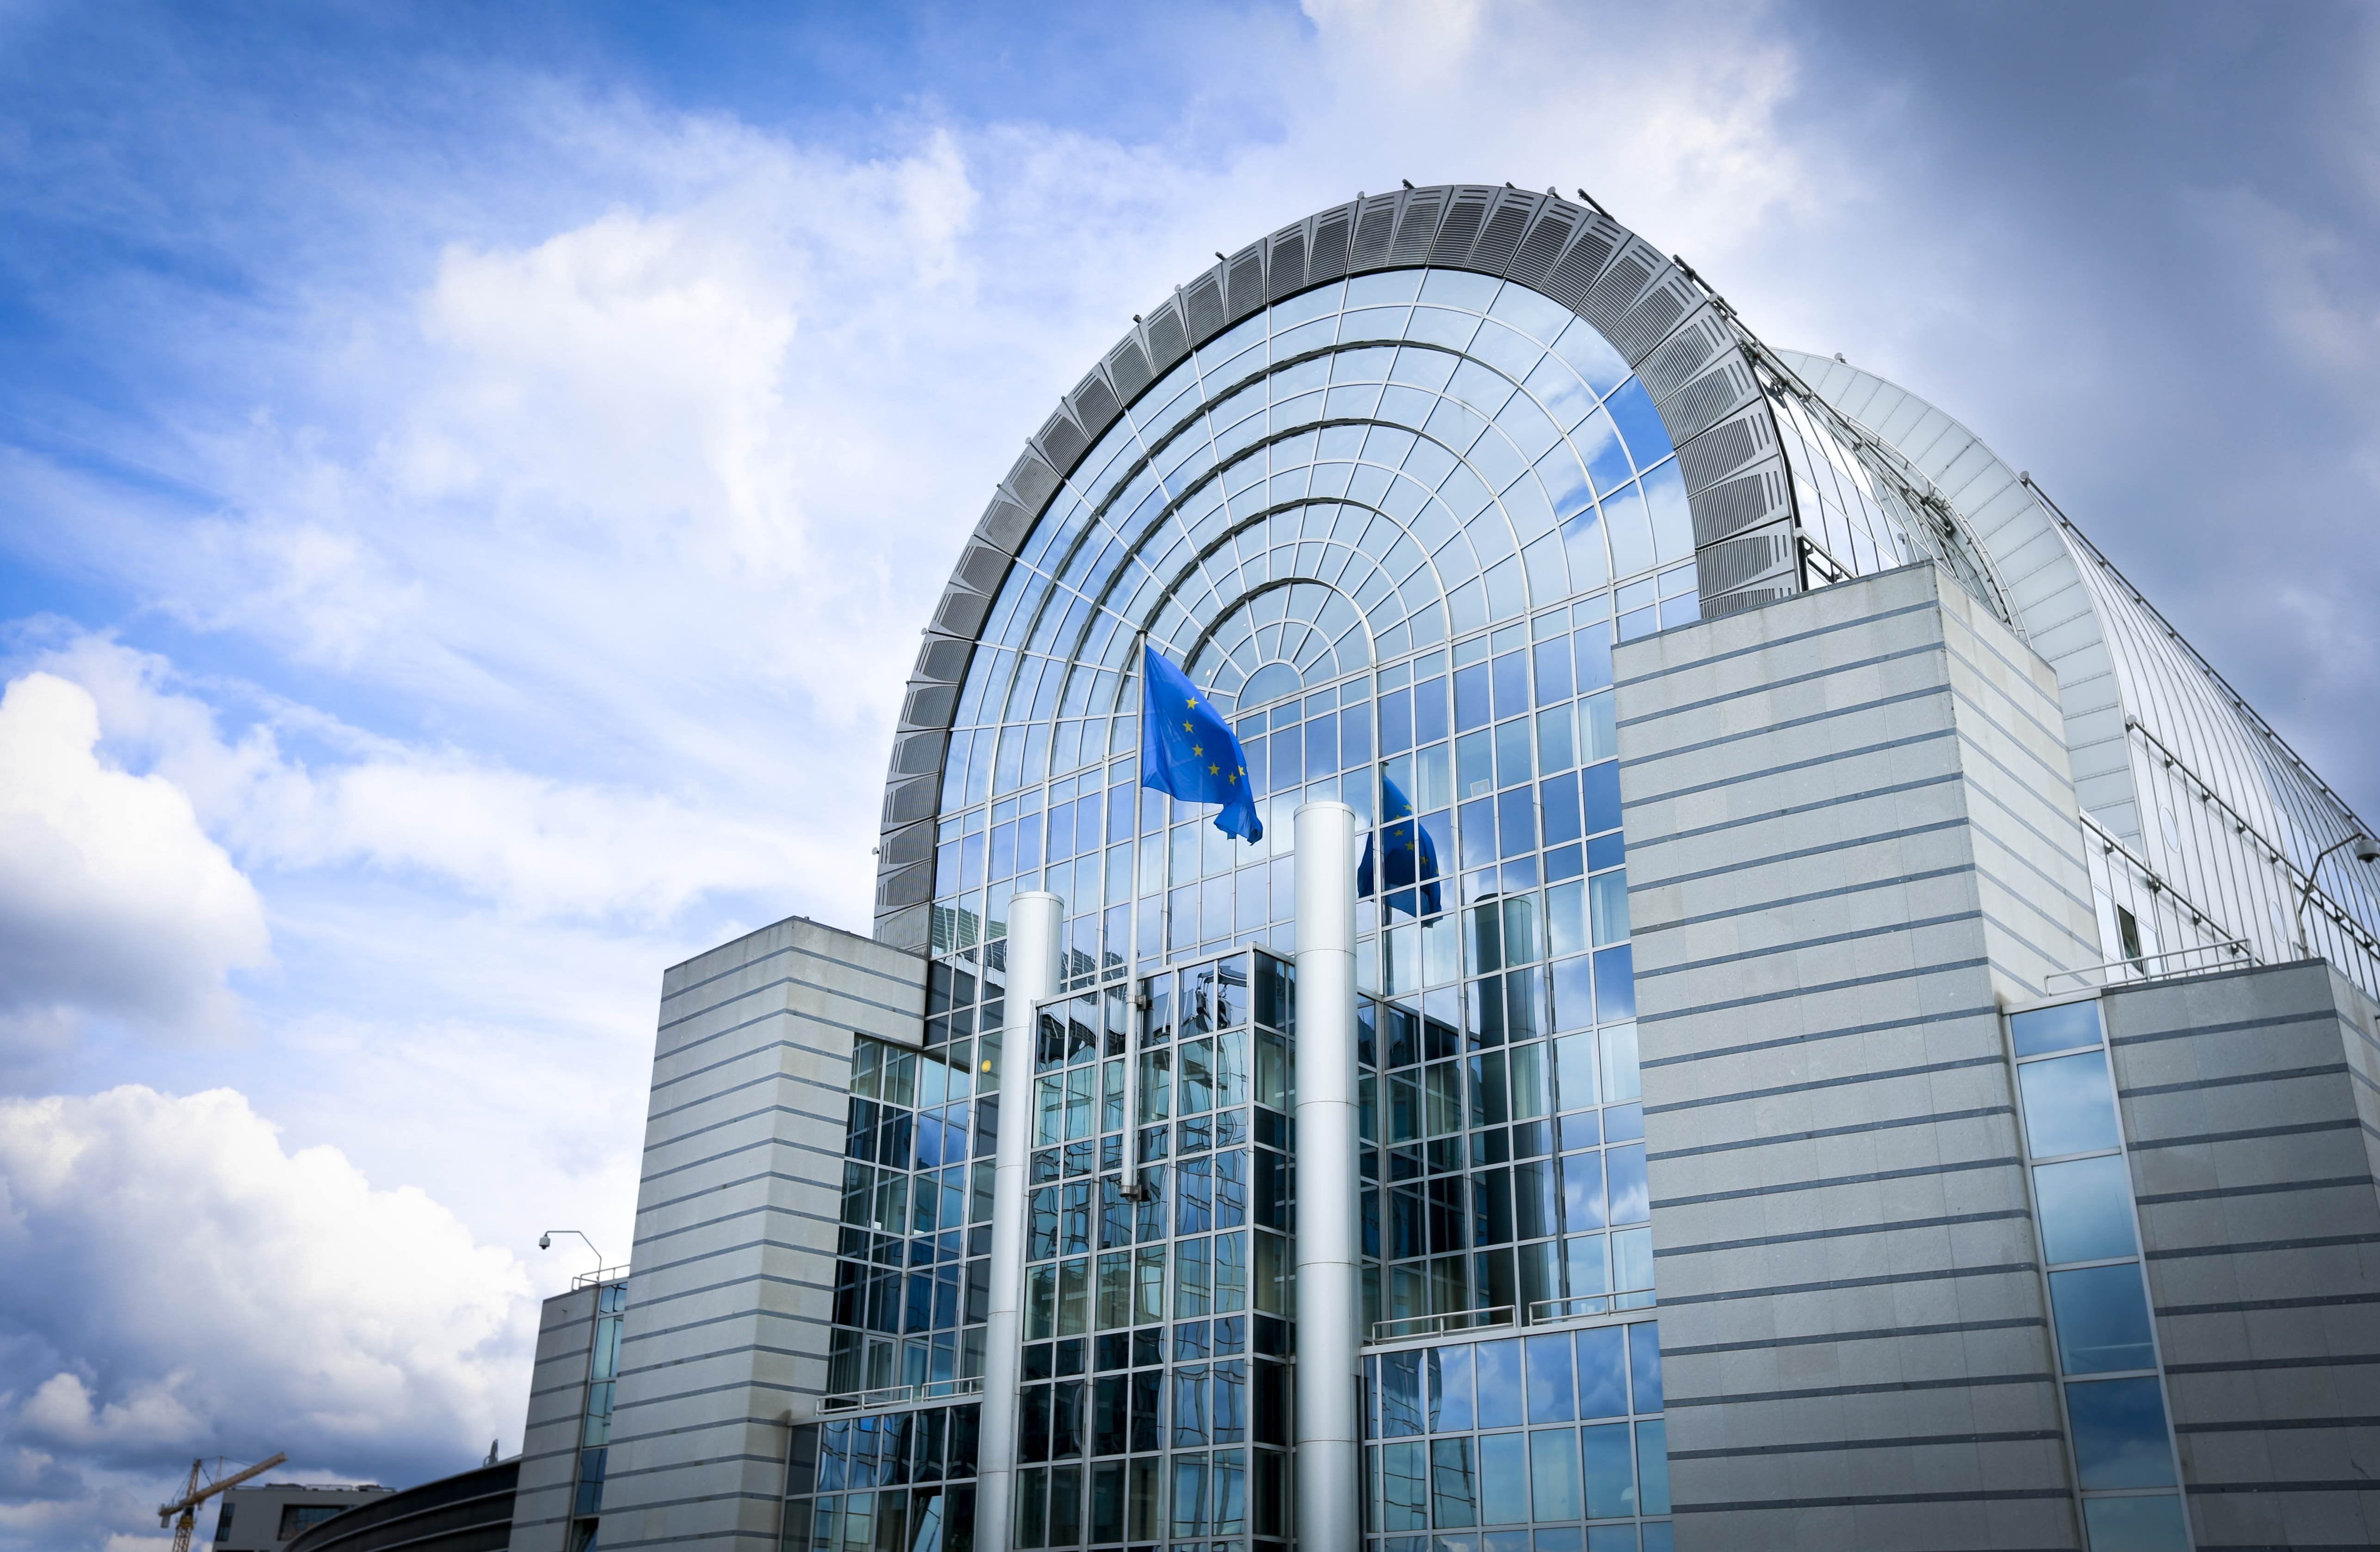 the european parliament 2 days ago  members of the european parliament along with blockchain experts met tuesday , september 4, to discuss possible regulations for initial coin.